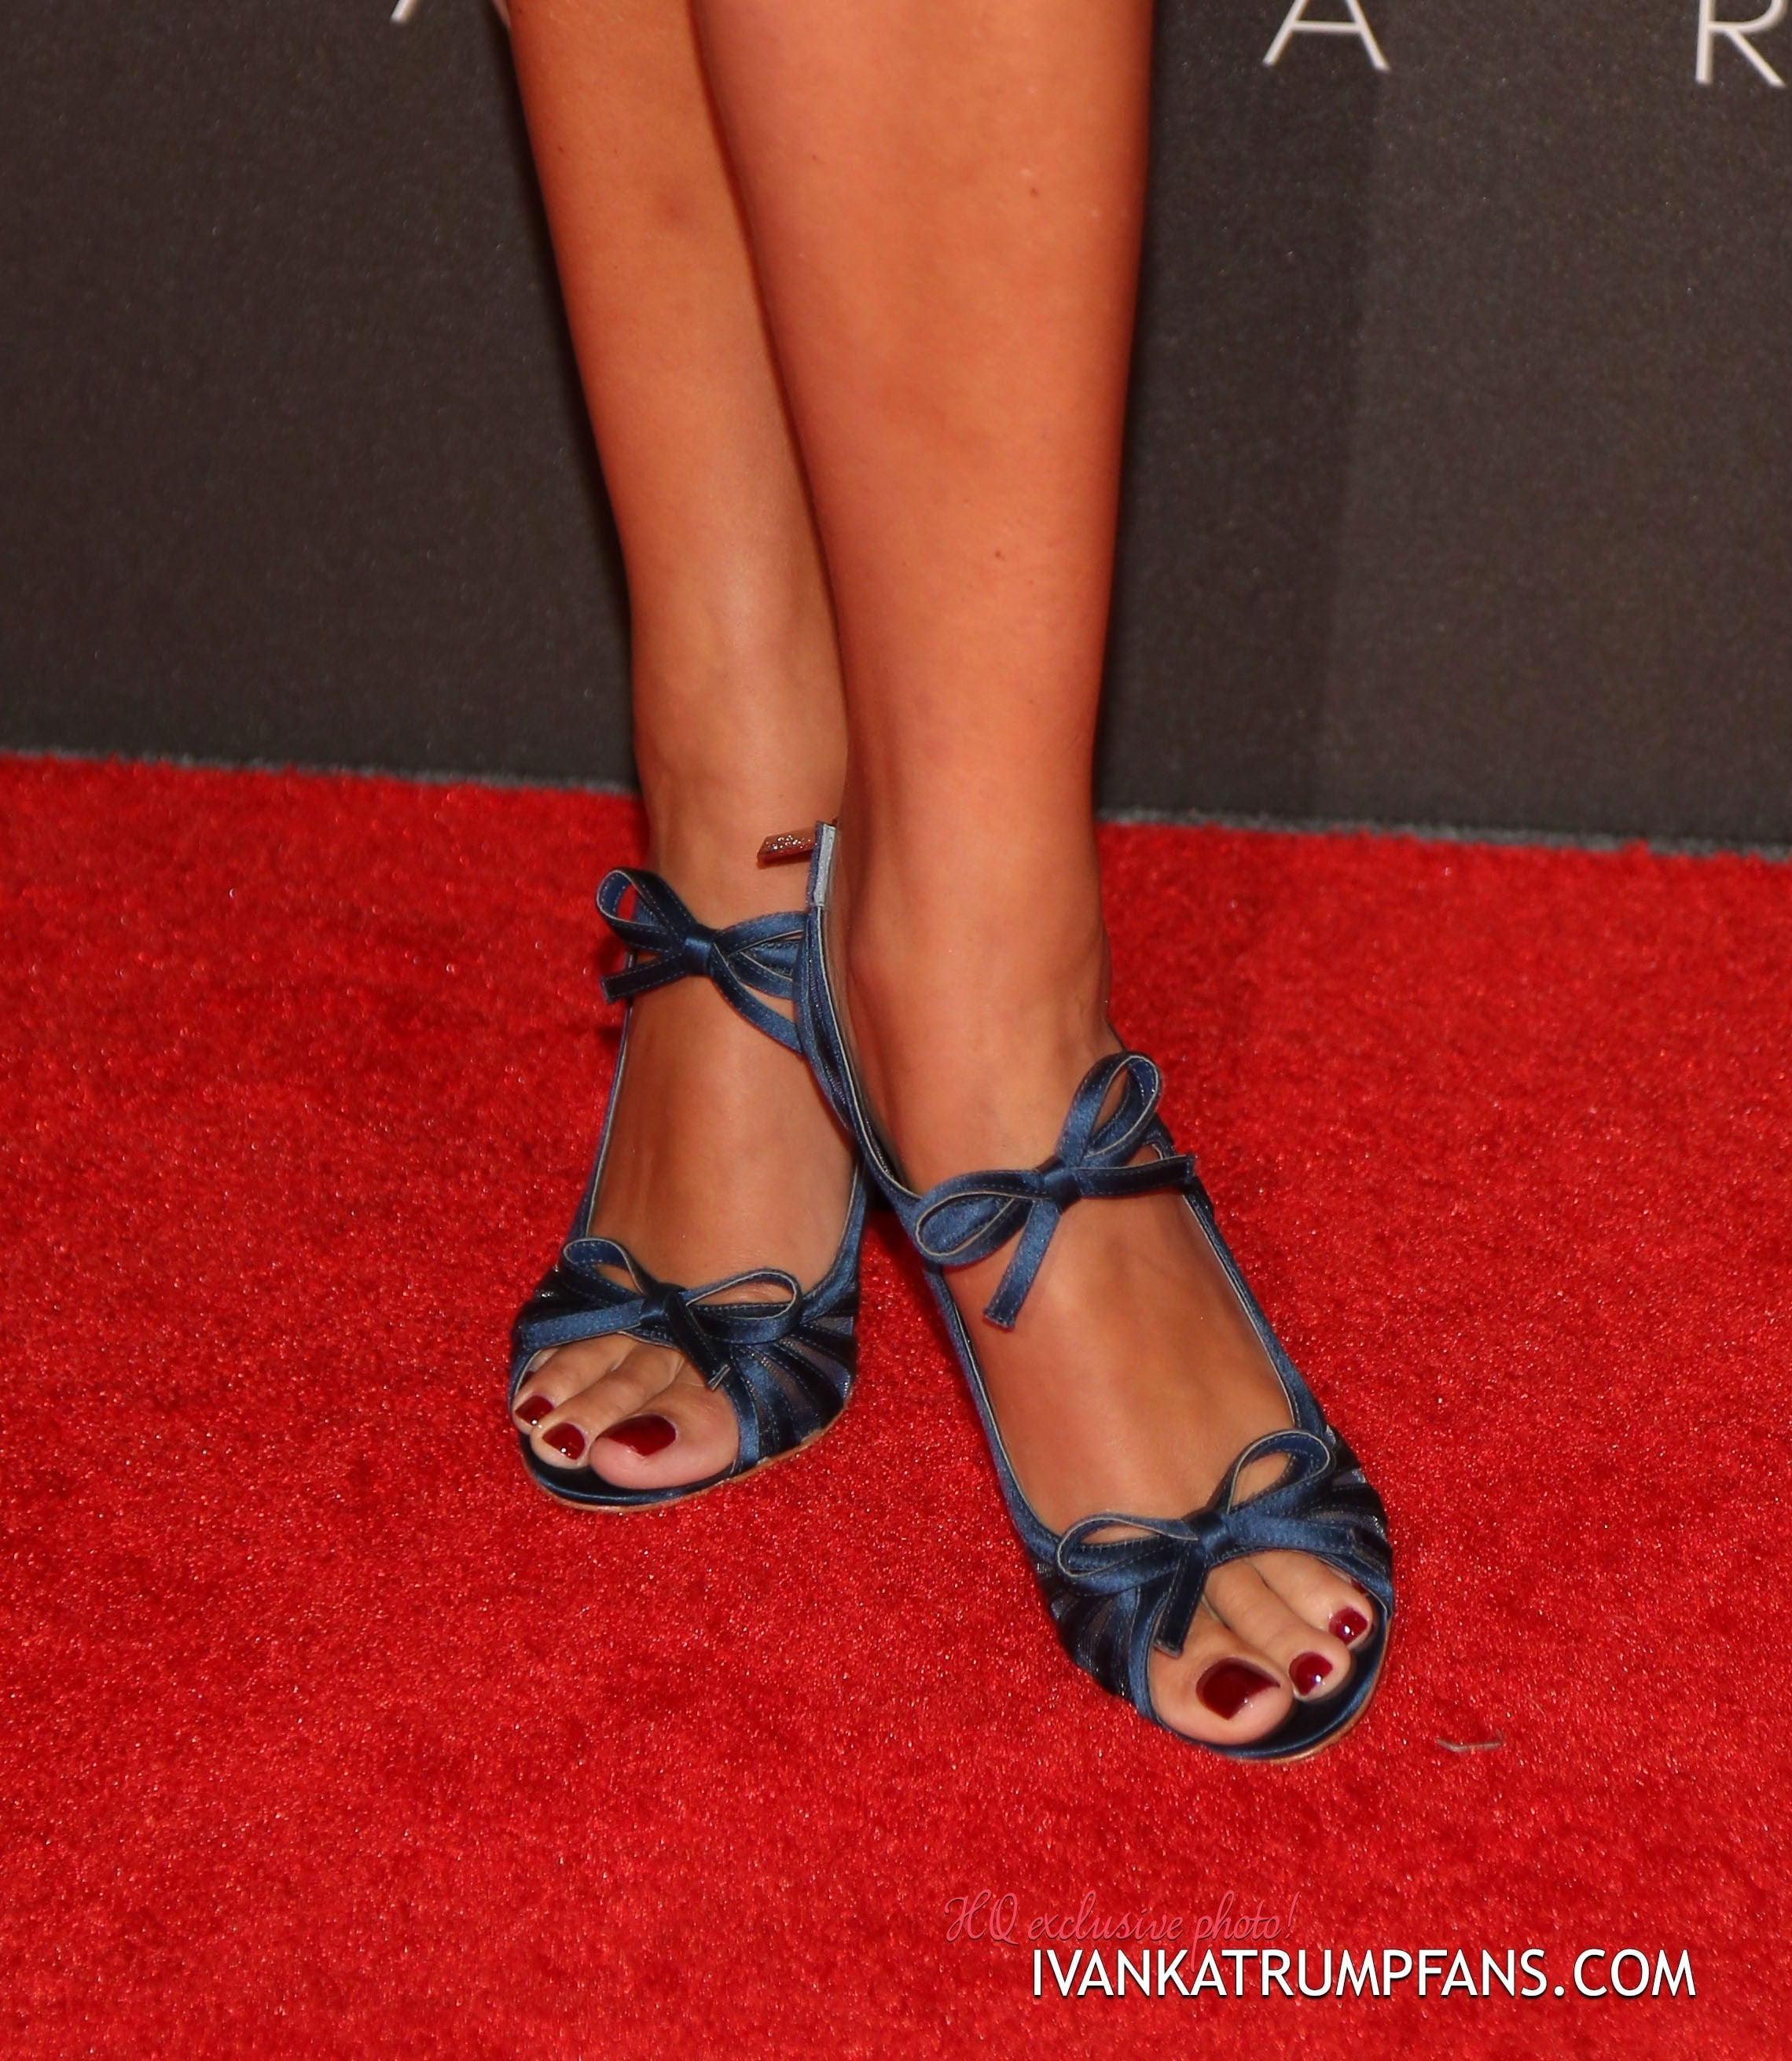 Ivanka Trump Ivanka Trump Beautiful Feet Image